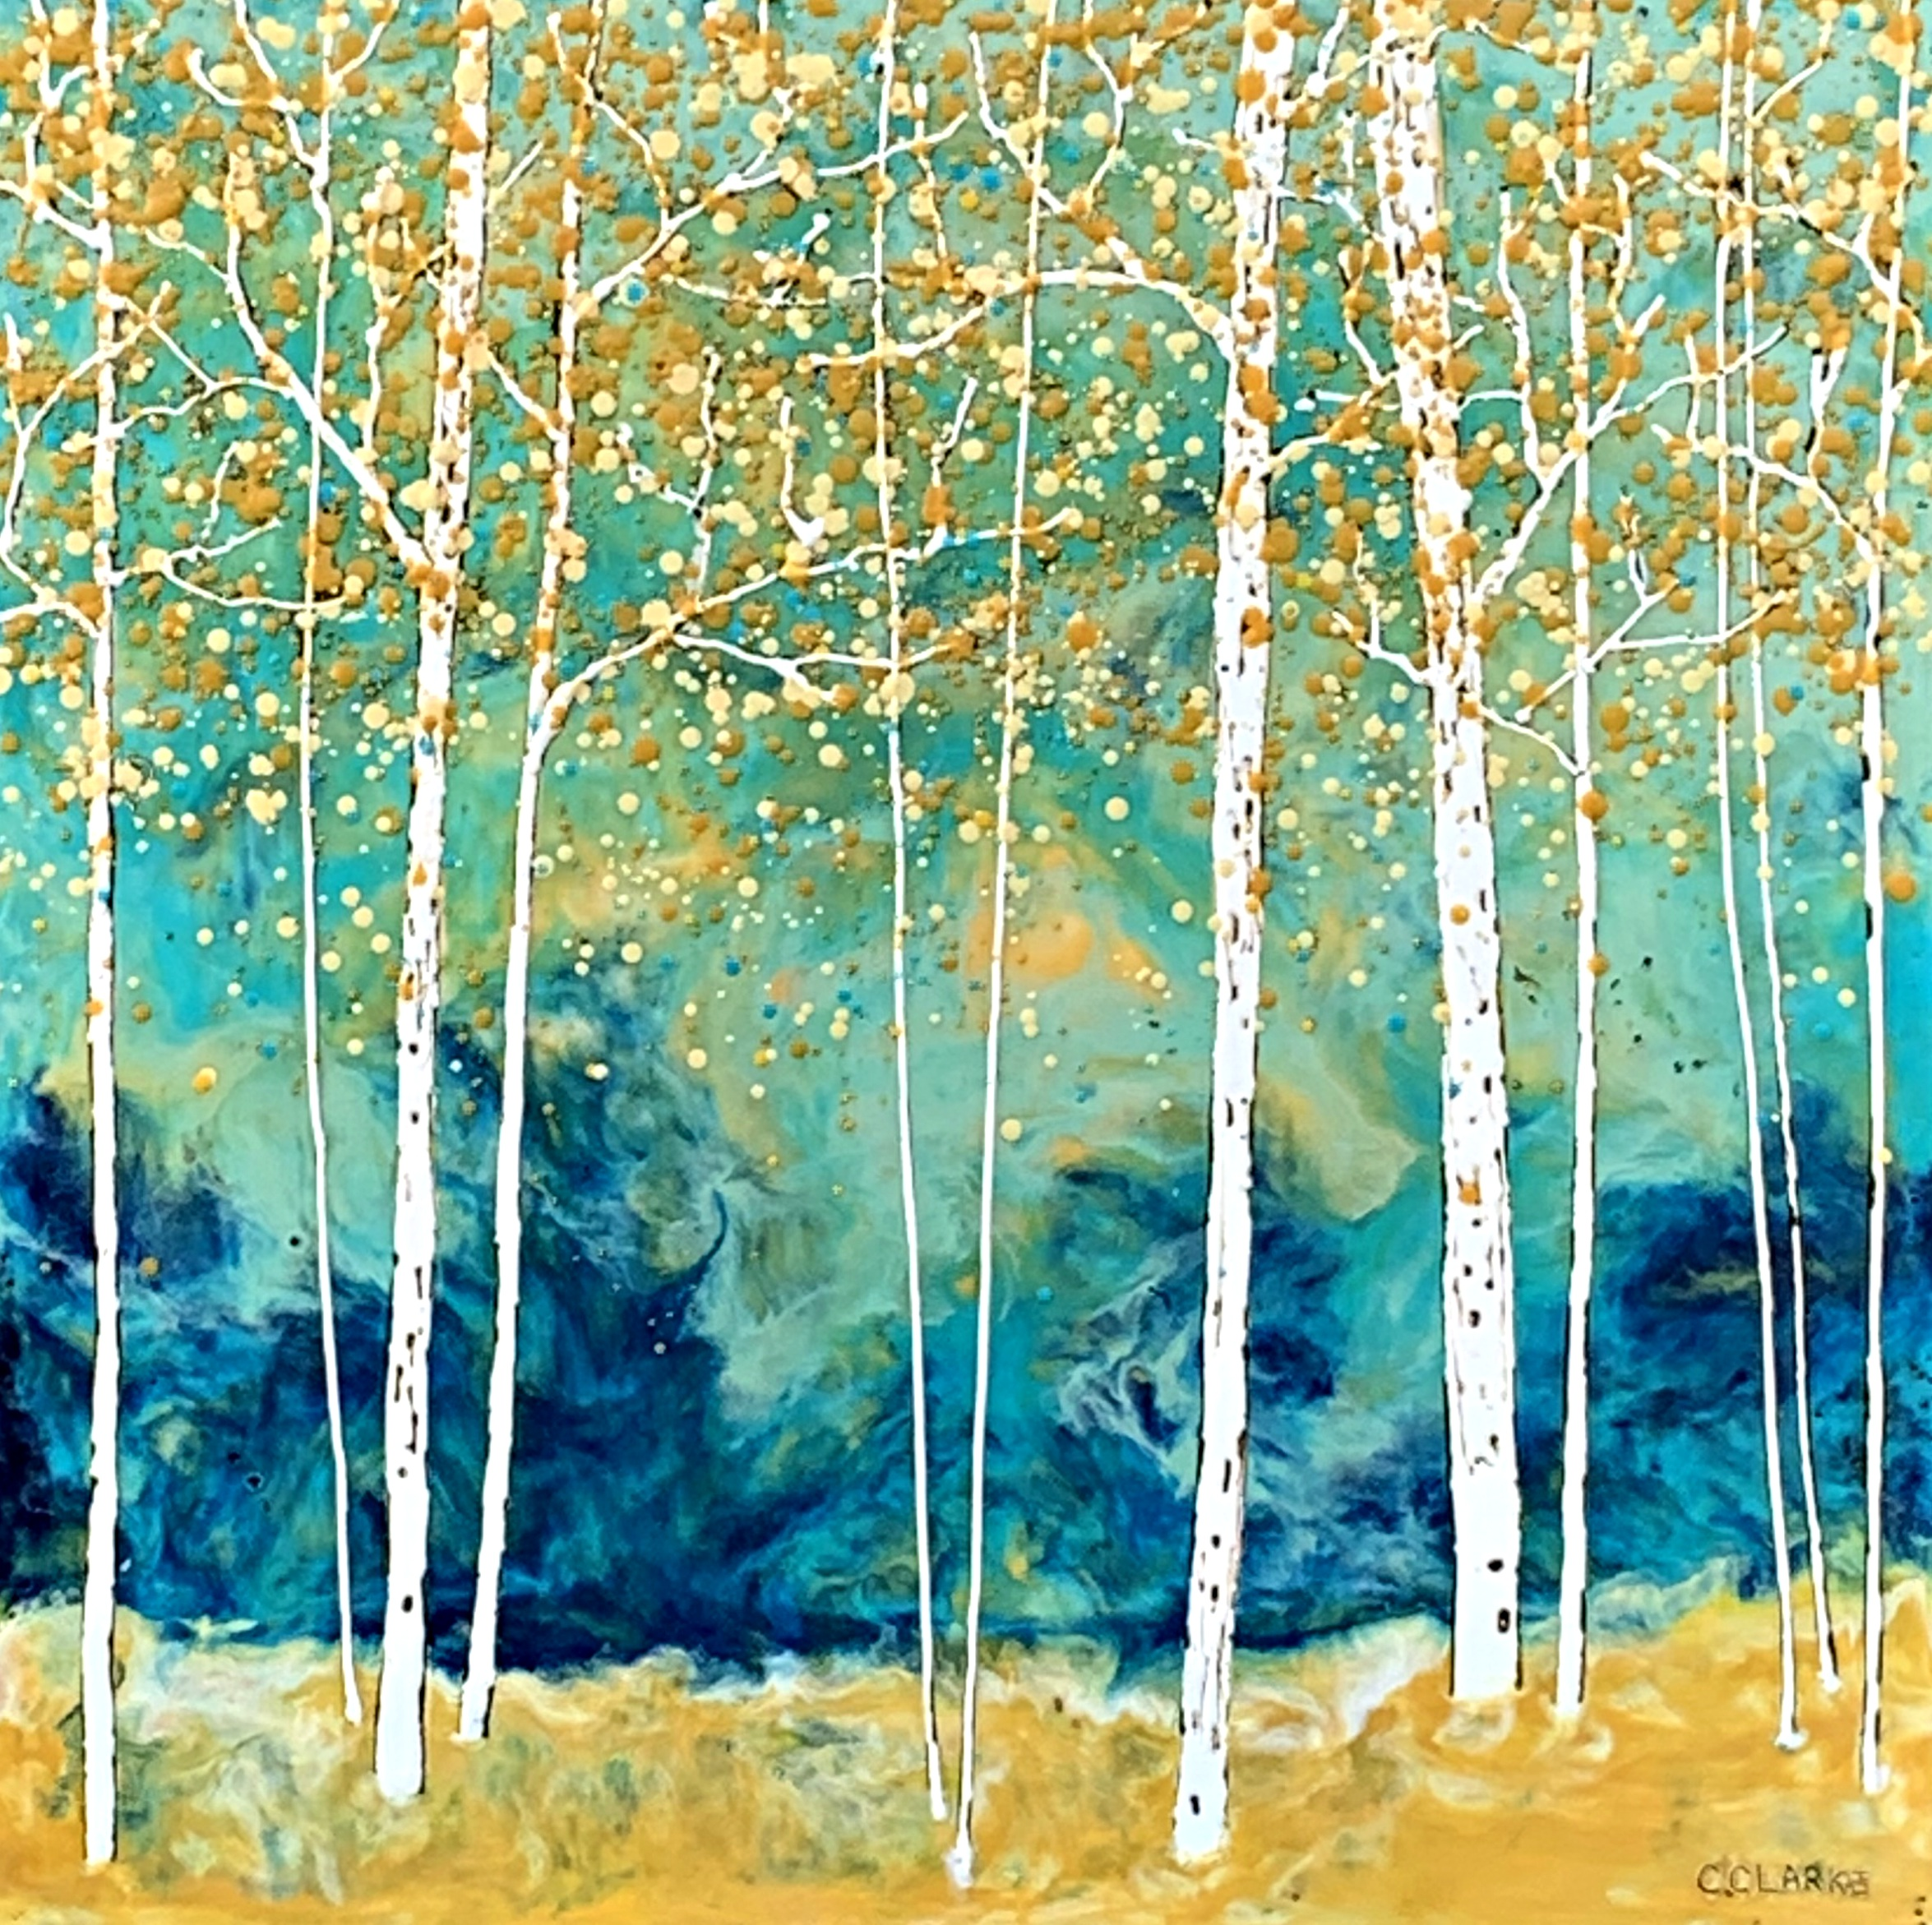 Don't Follow Harry, encaustic painting by Catharine Clarke | Effusion Art Gallery + Cast Glass Studio, Invermere BC